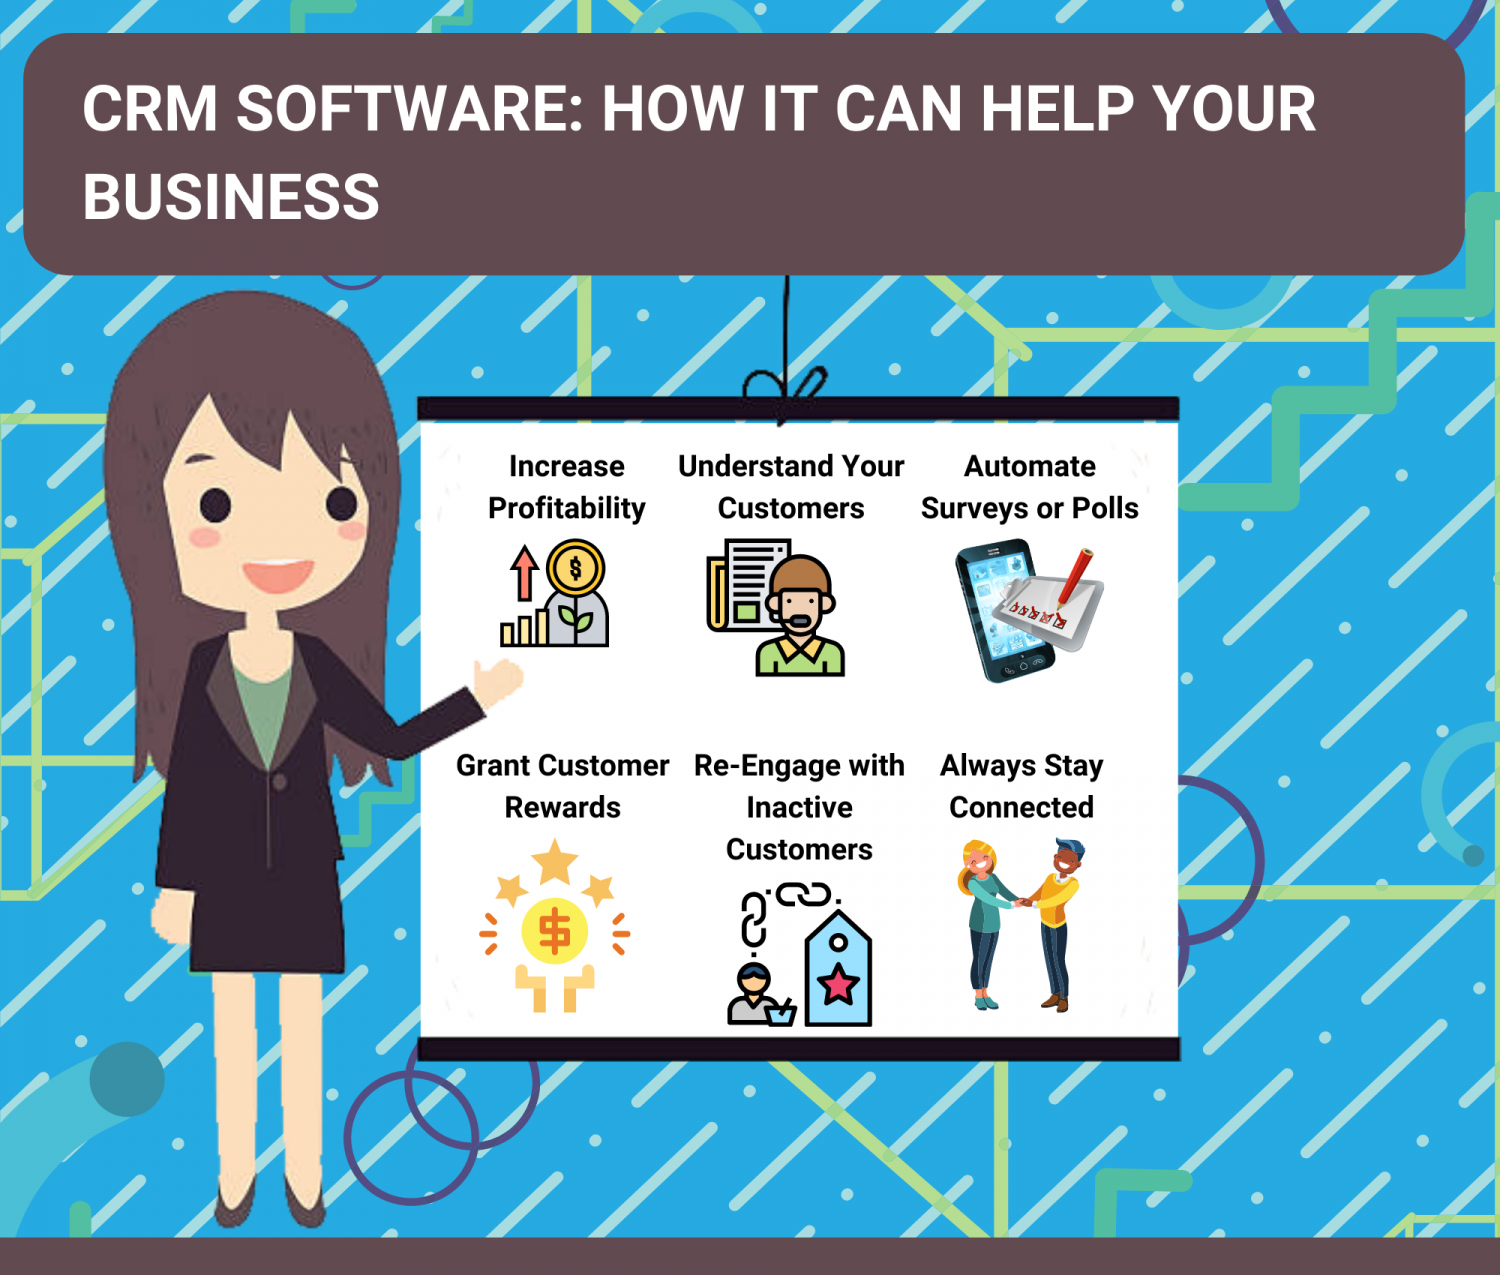 CRM Software: How It Can Help Your Business Infographic